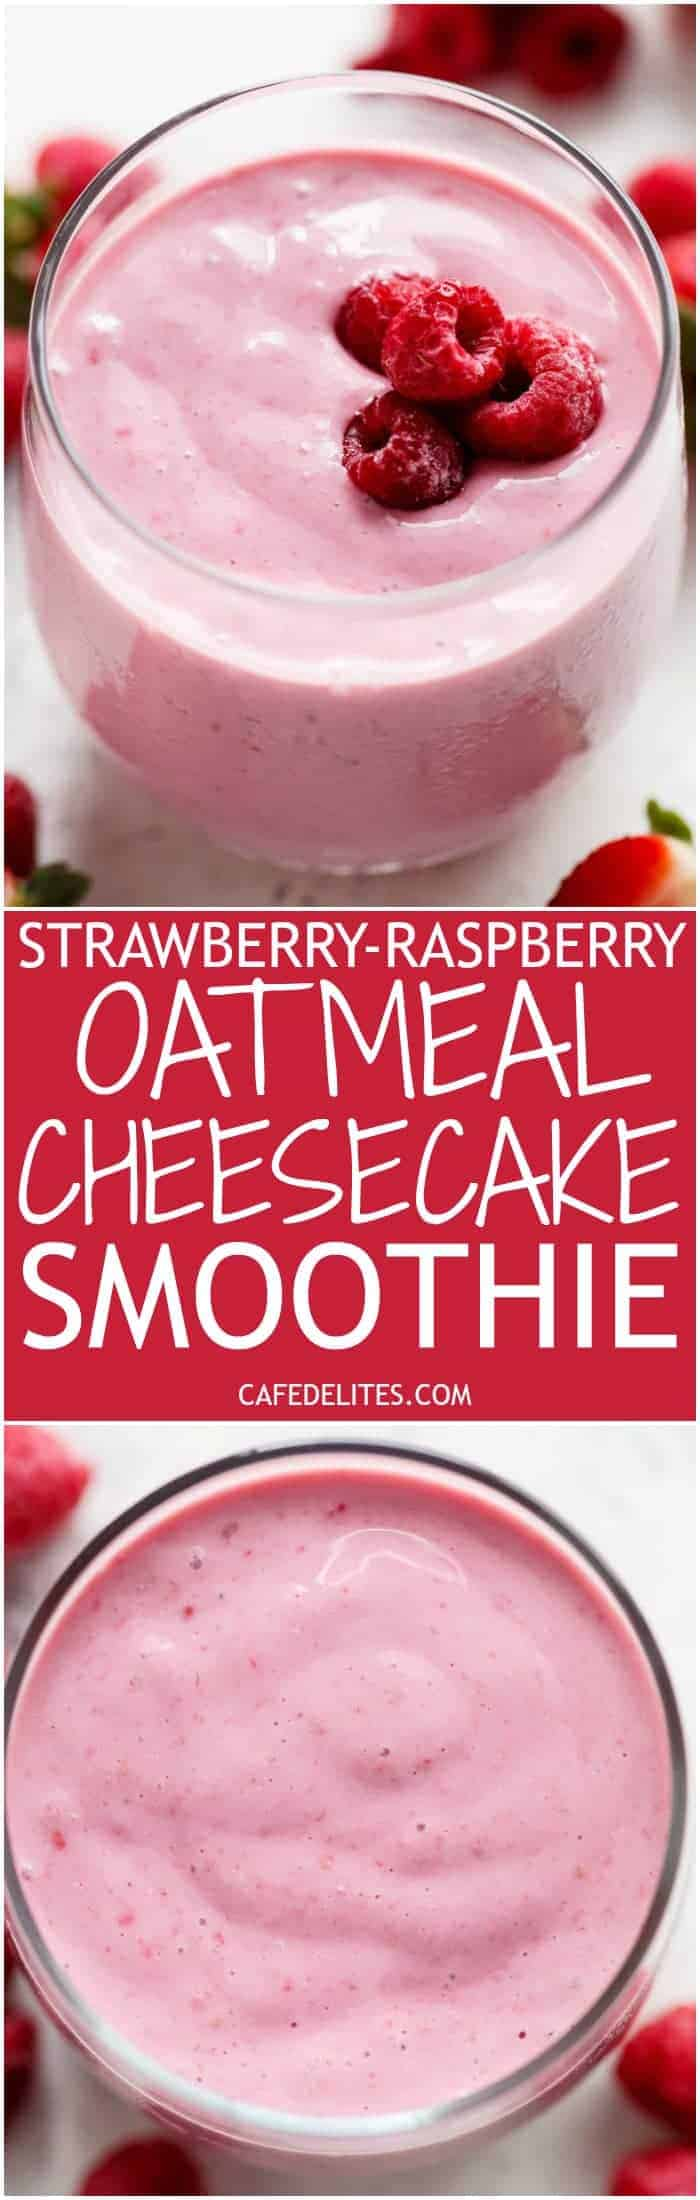 A thick, super creamy and filling Strawberry-Raspberry Oatmeal Cheesecake Smoothie that tastes exactly like a cheesecake....in a glass....for breakfast! | https://cafedelites.com